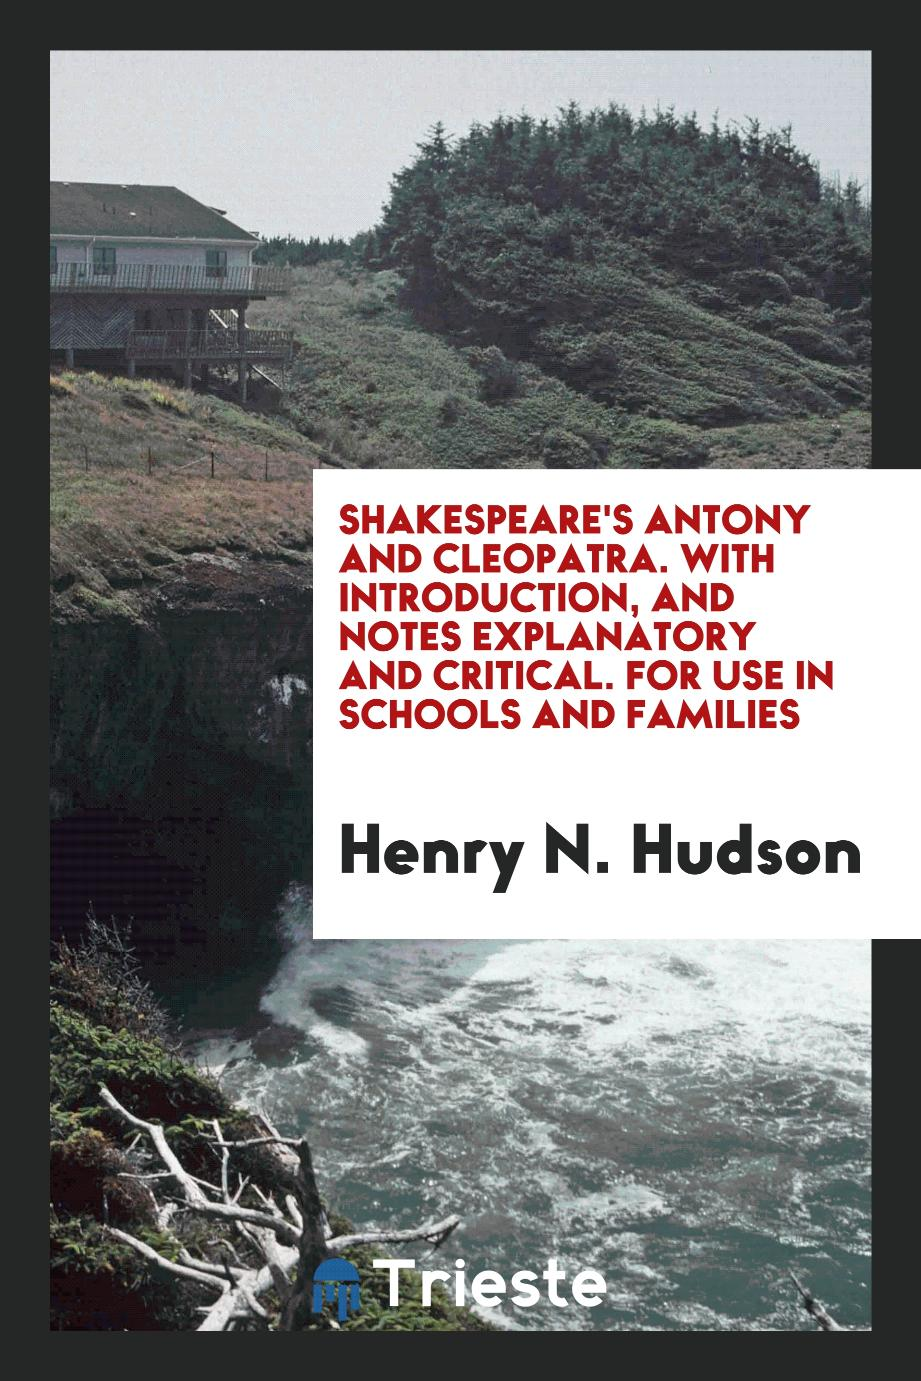 Shakespeare's Antony and Cleopatra. With introduction, and notes explanatory and critical. For use in schools and families